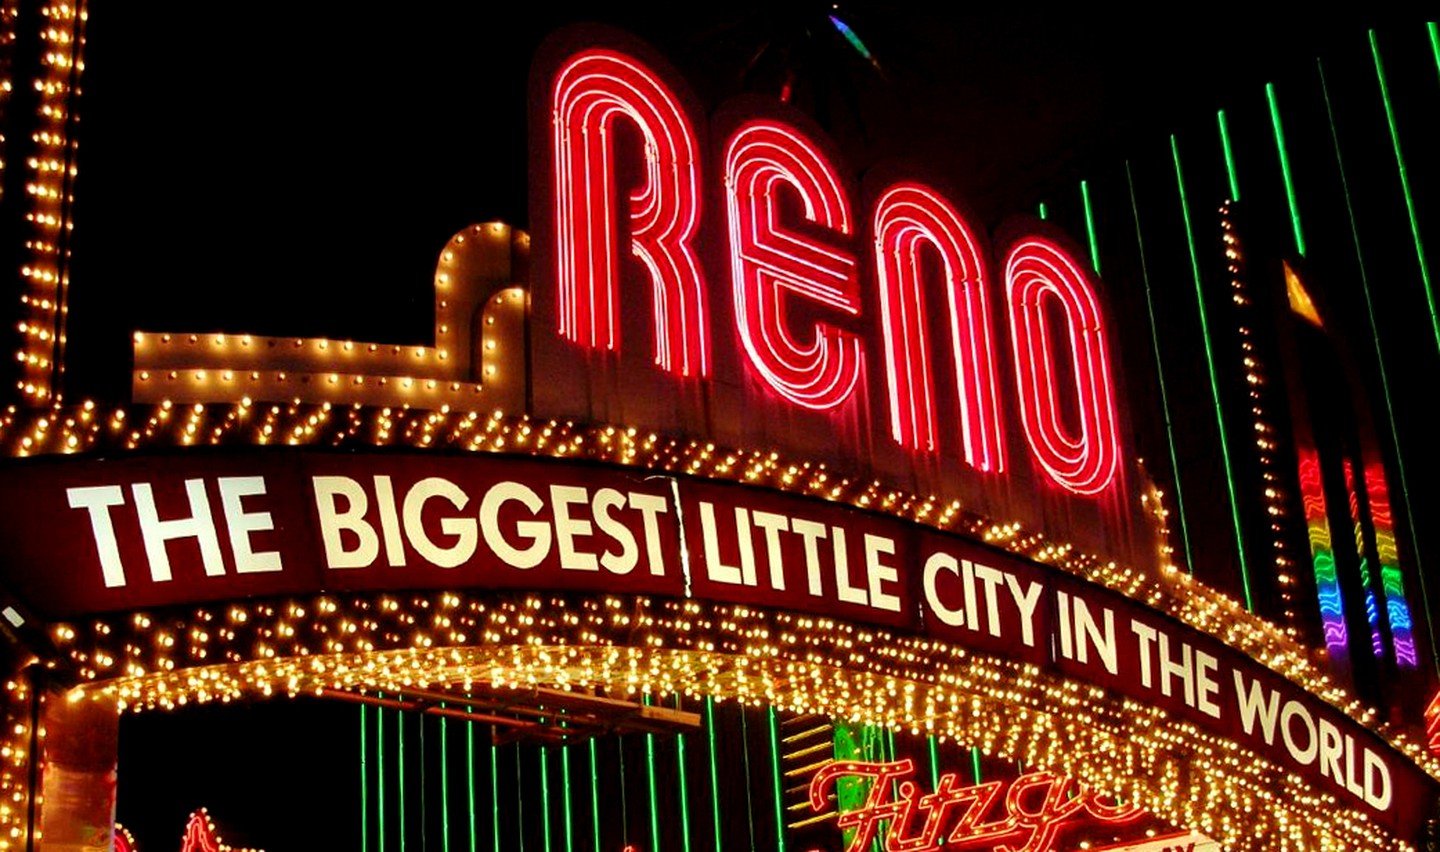 """The biggest little city in the world"" - Also located in Nevada, the Reno Arch is iconic, and has been famous for its casinos since 1926."